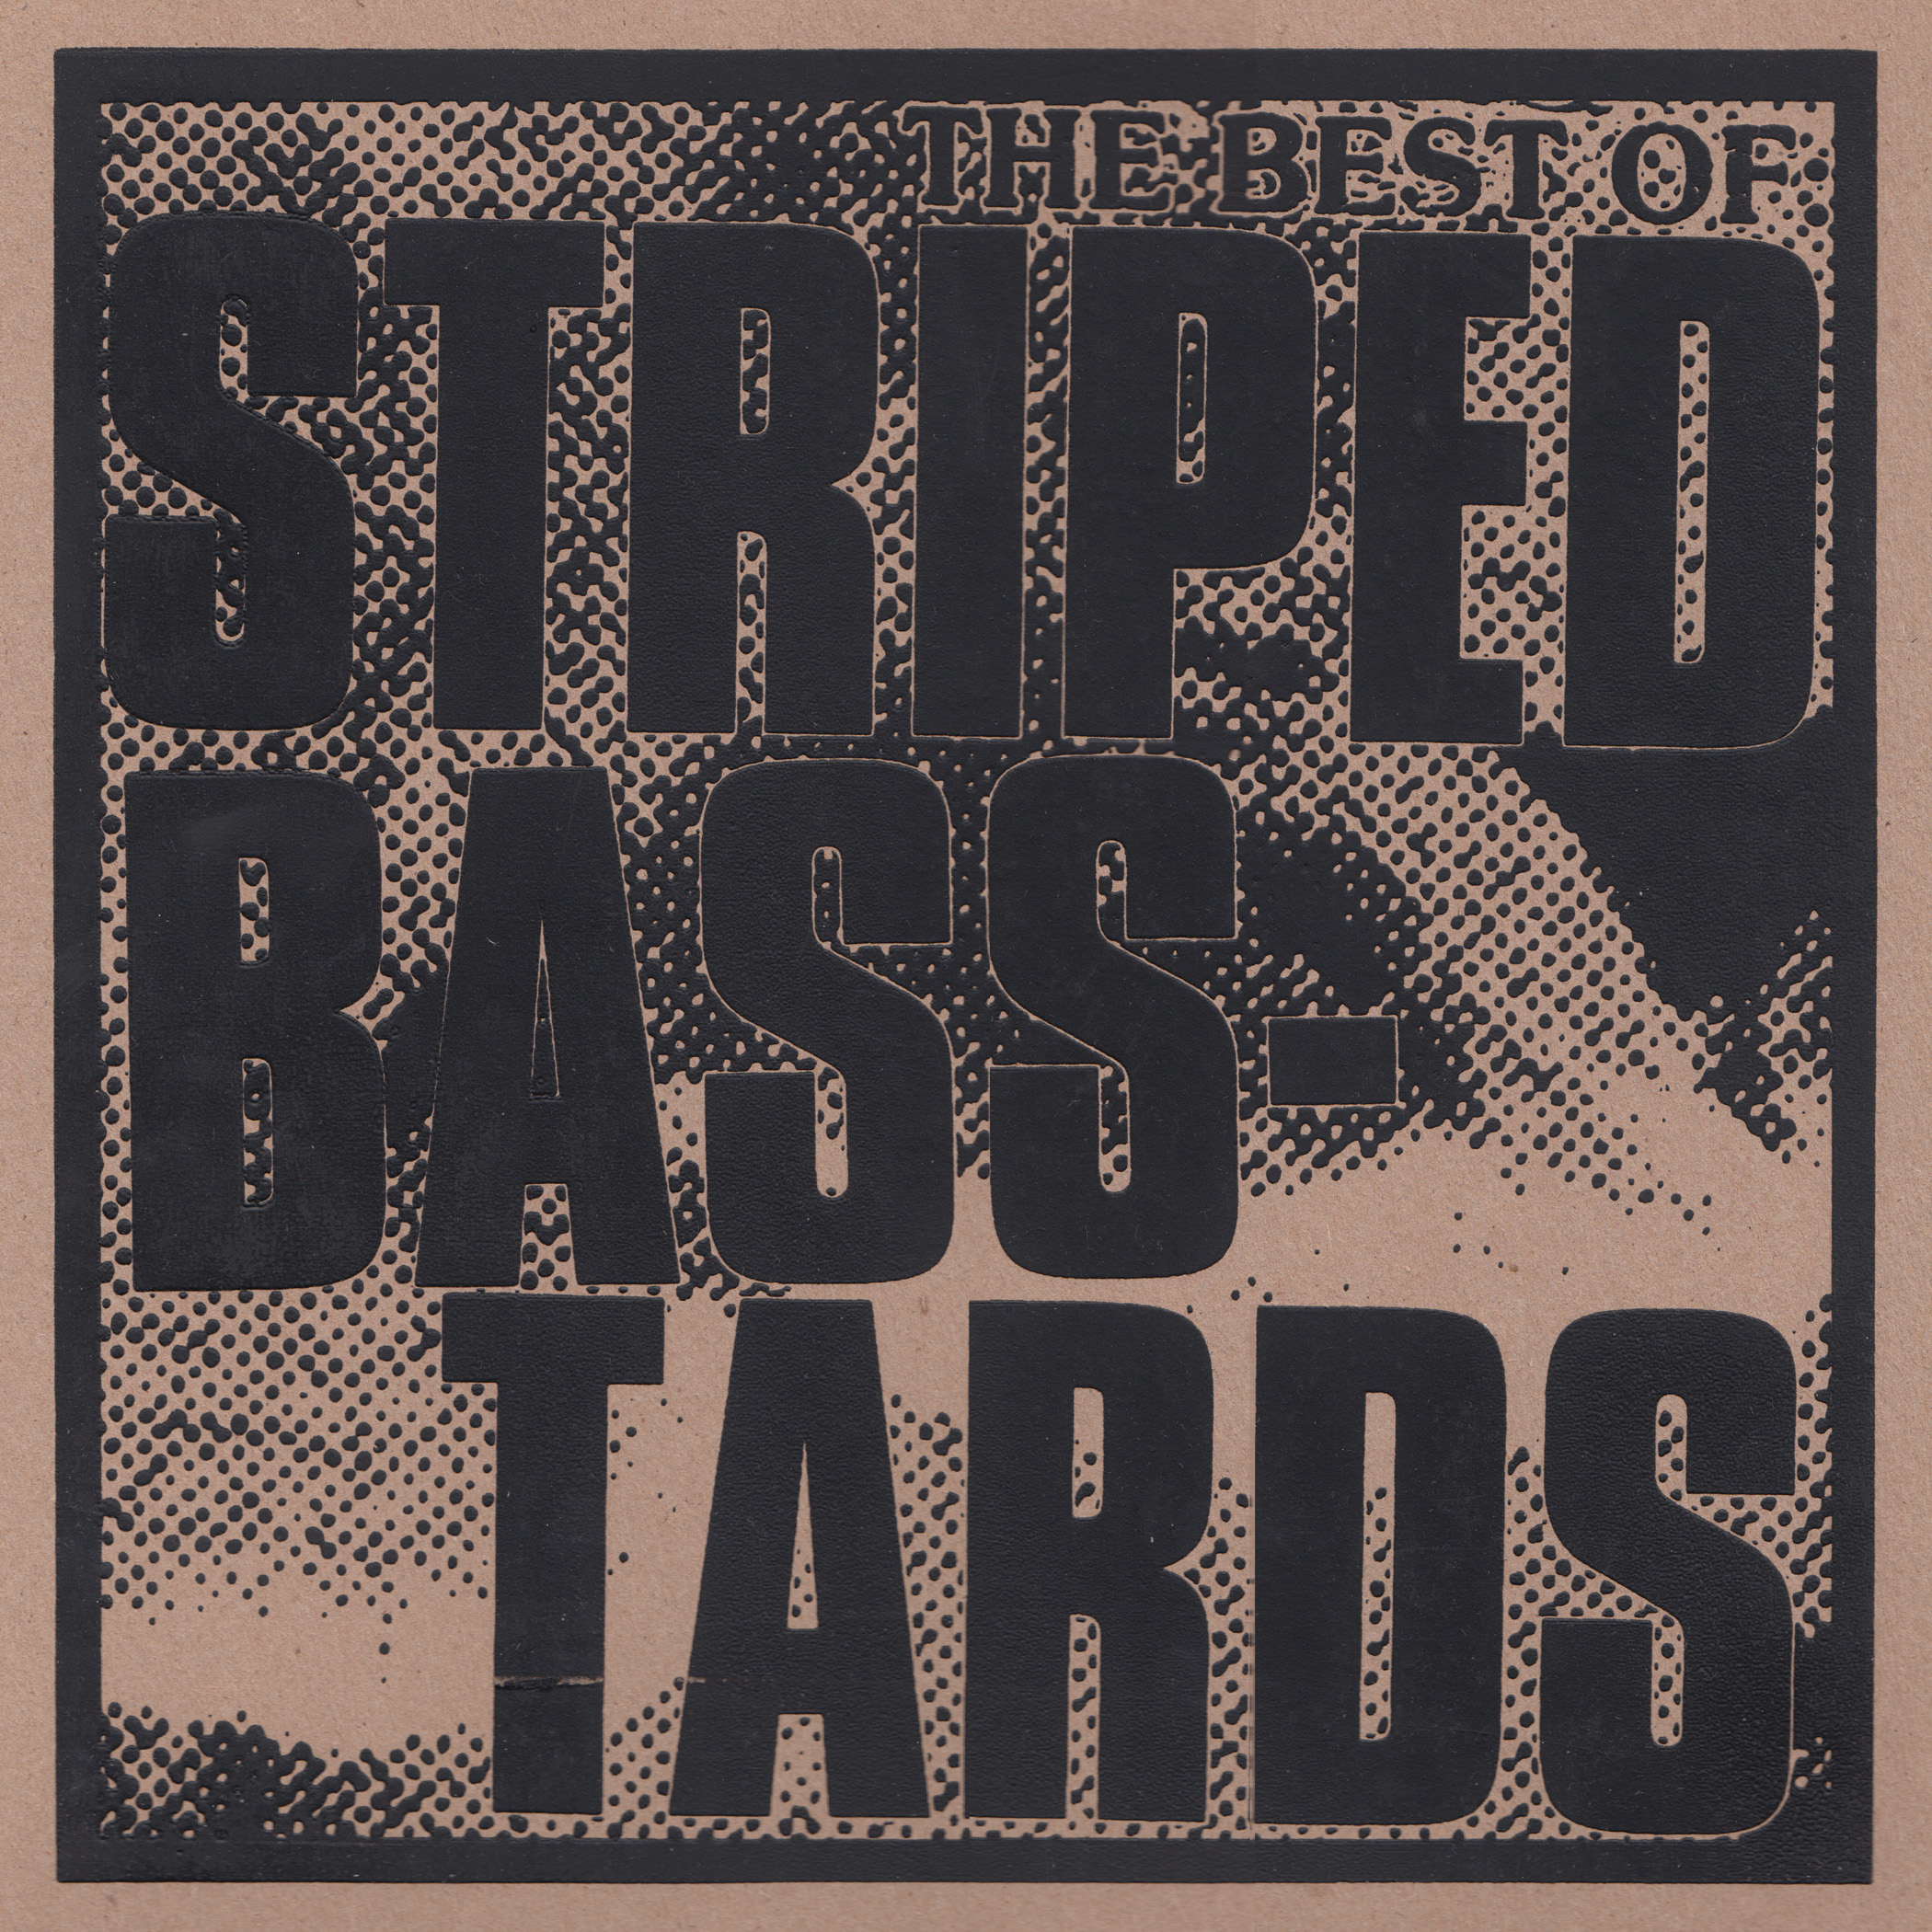 STRIPED BASSTARDS